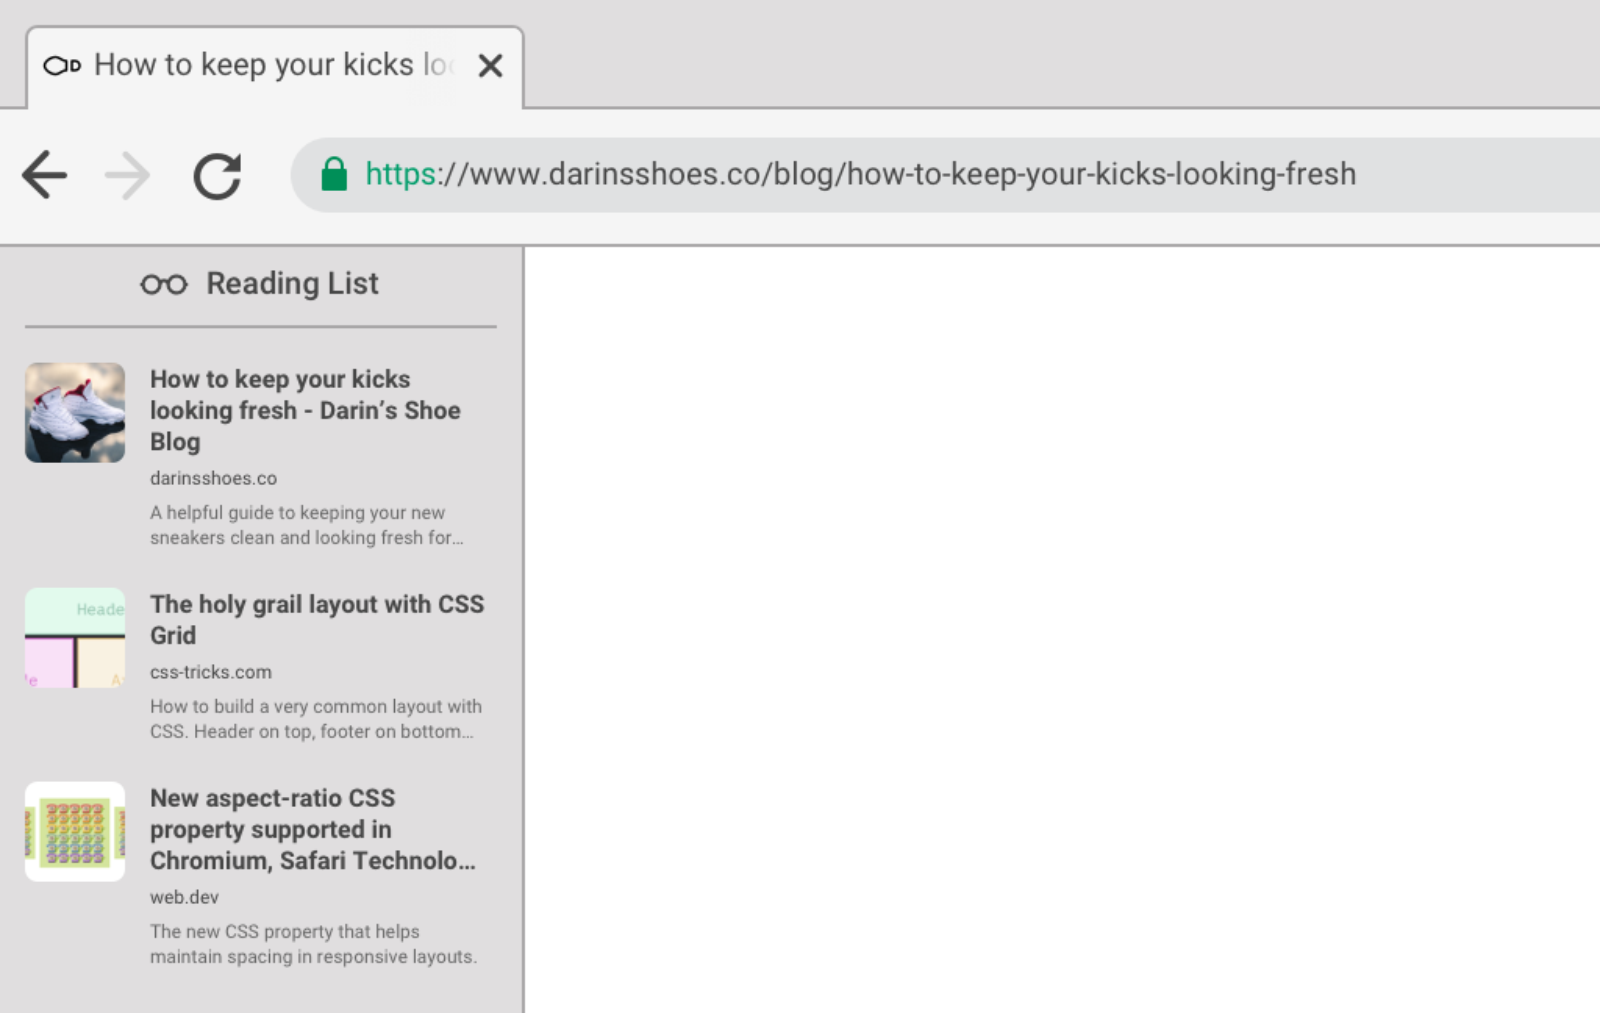 Browser interface with a Reading List sidebar which contains titles, previews, and links to three articles.